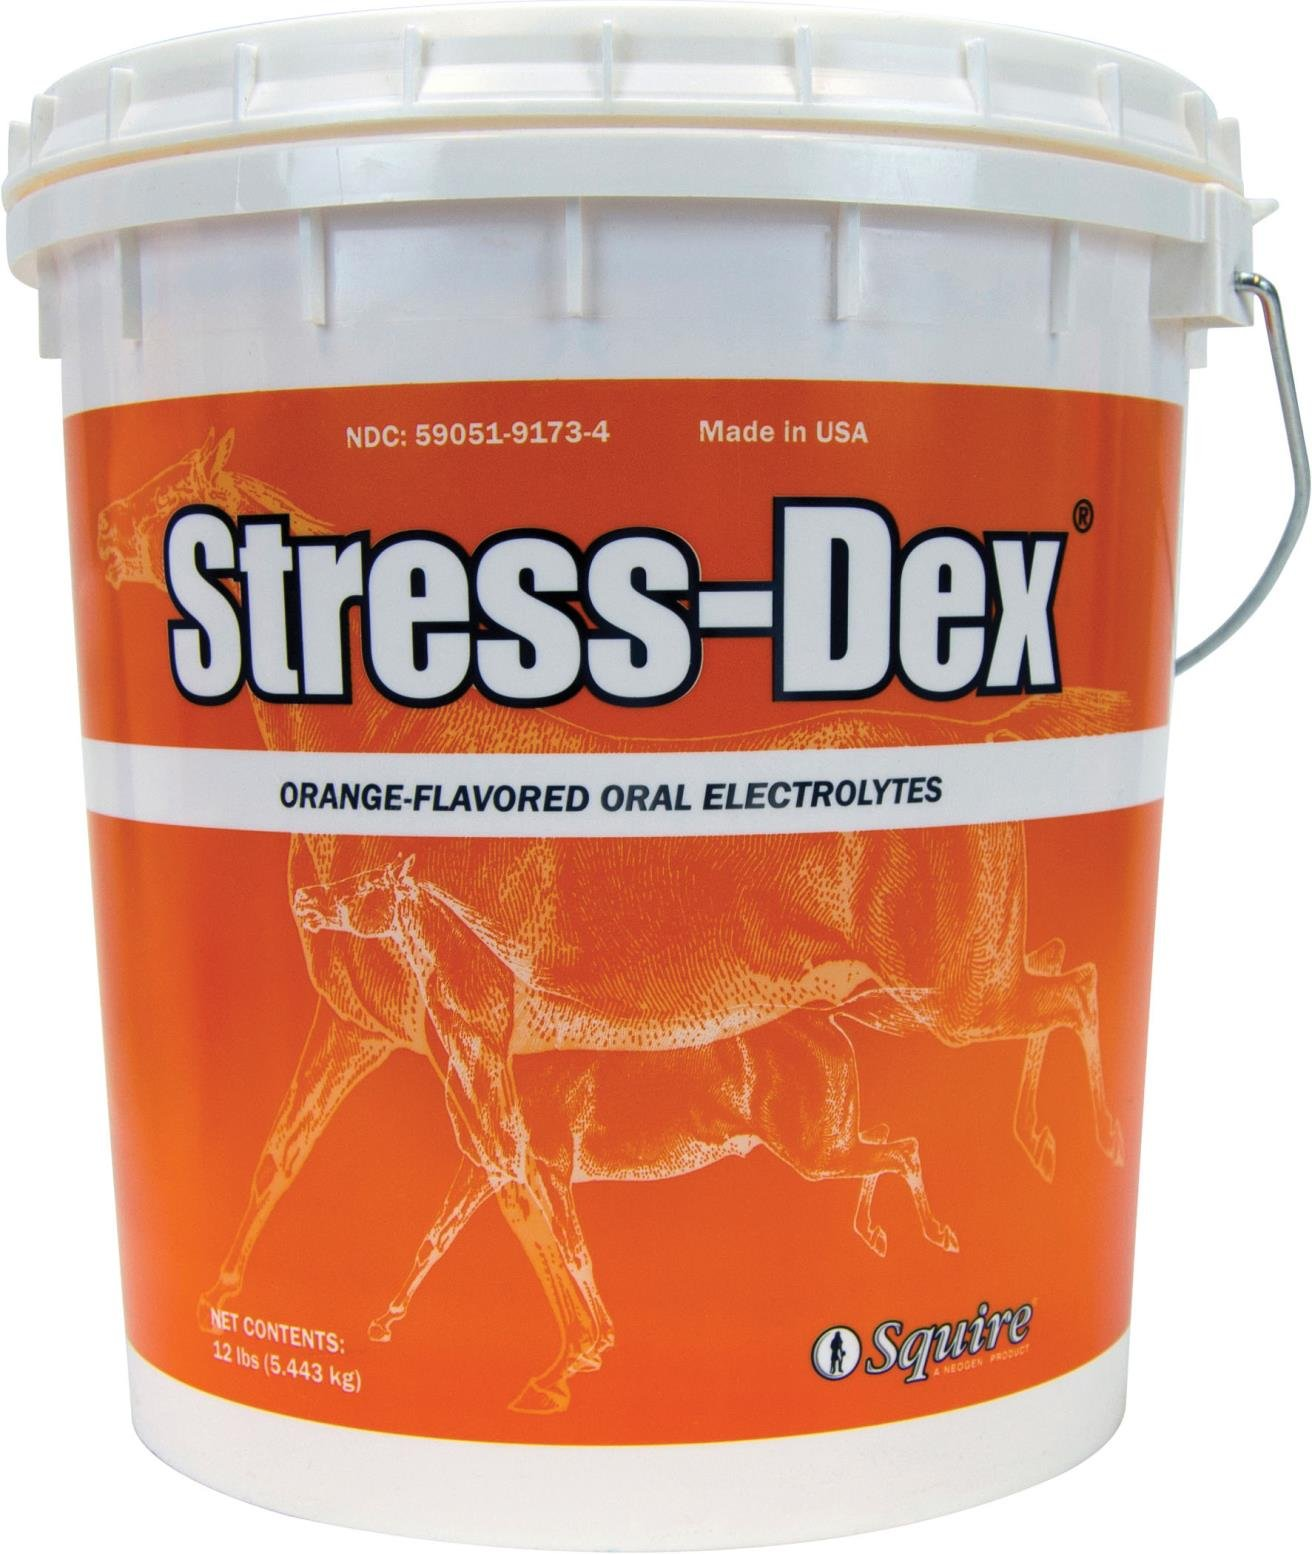 DPD Squire Stress-DEX Oral Electrolyte for Horses - 12 Pound